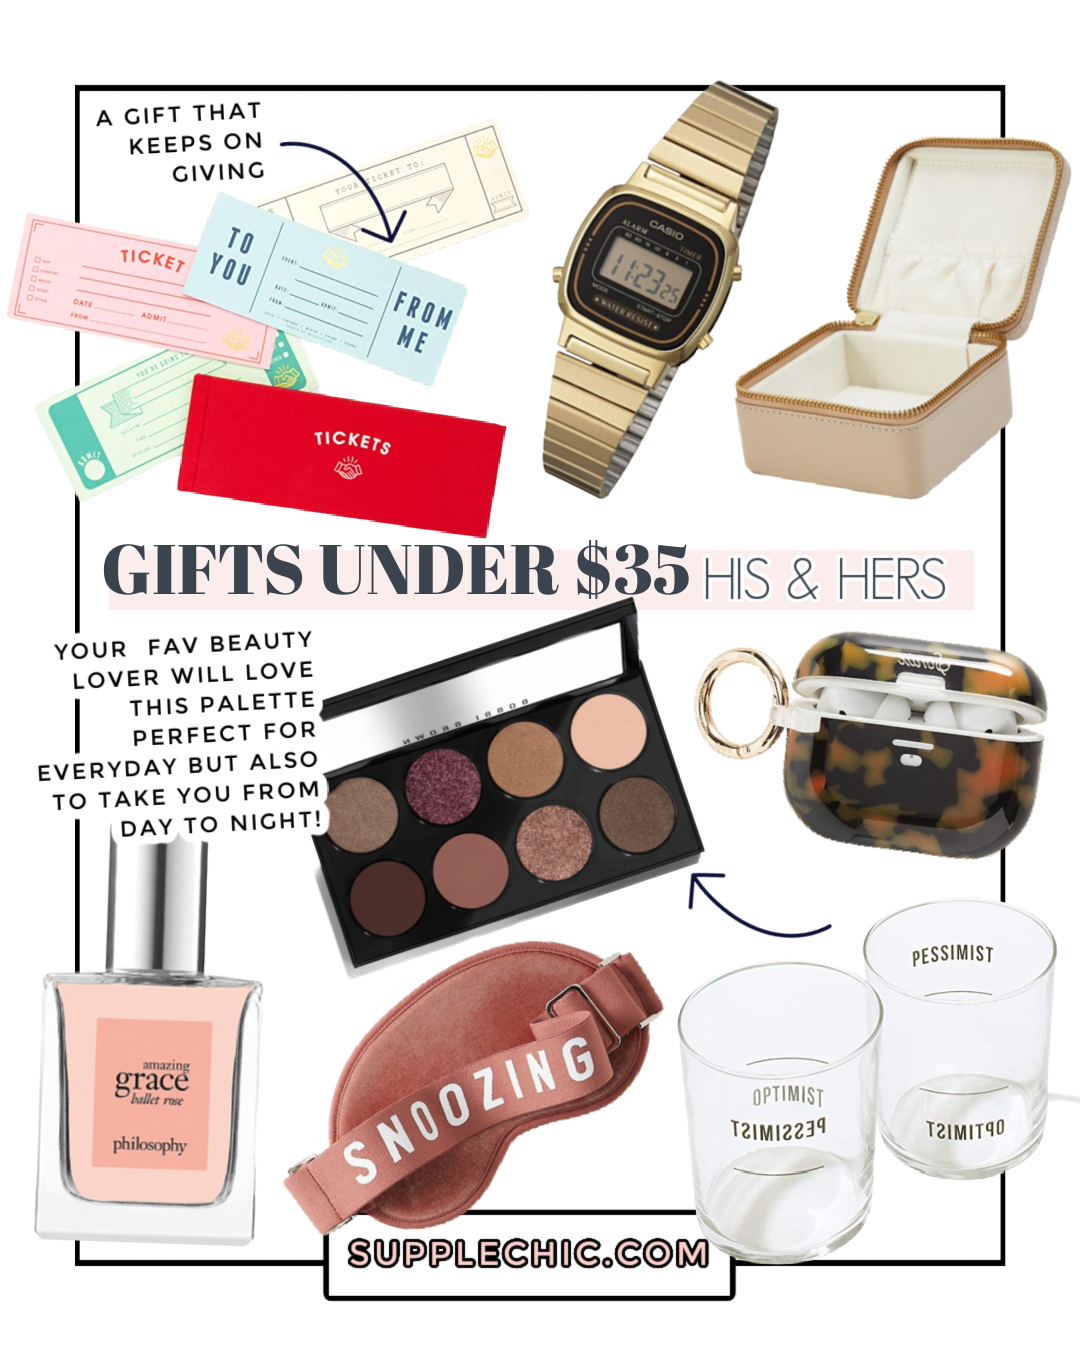 GIFTS UNDER 35 from supplechic a fashion and lifestyle blog based in baltimore